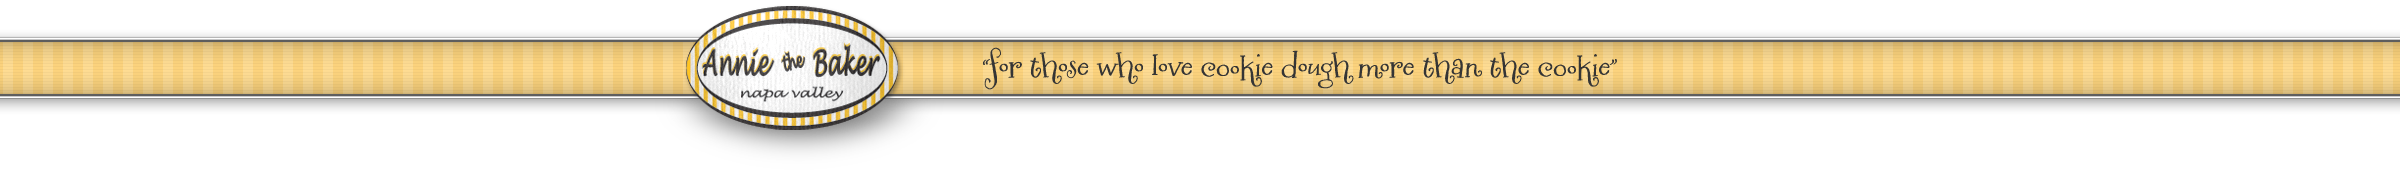 Annie the Baker, for those who love cookie dough more than the cookie